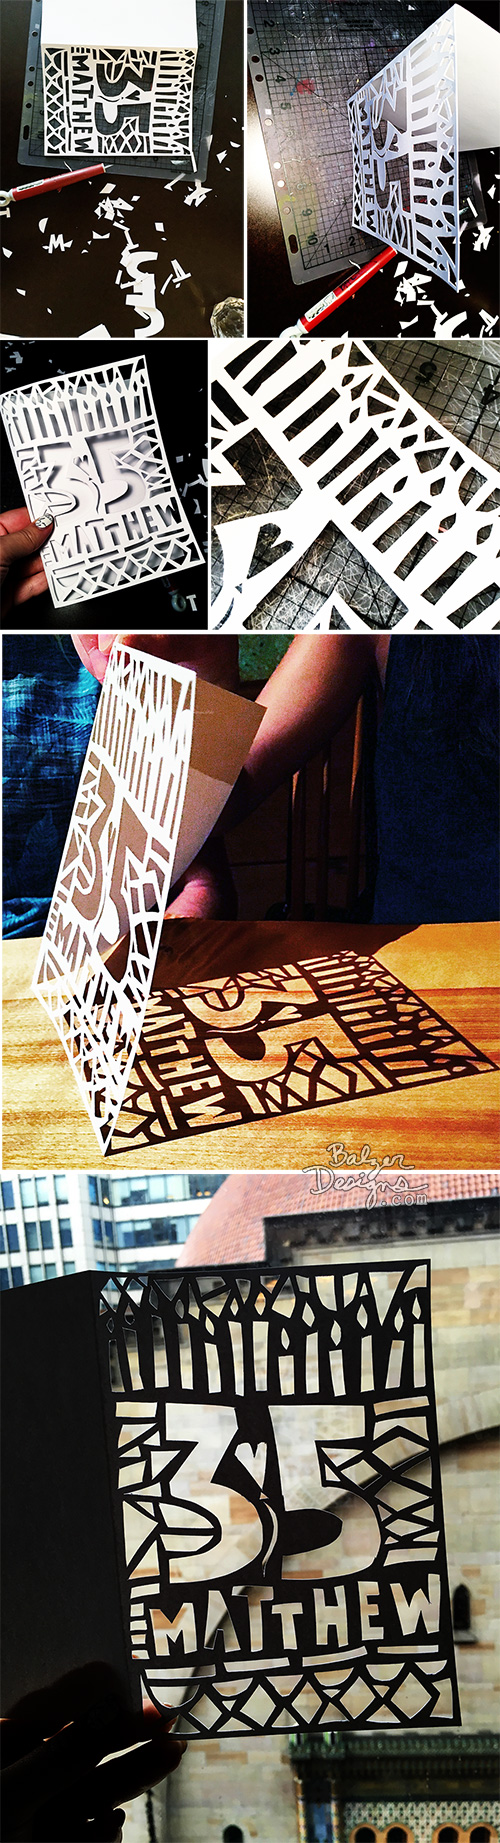 from the Balzer Designs Blog: Hand Cut Birthday Card for my Brother